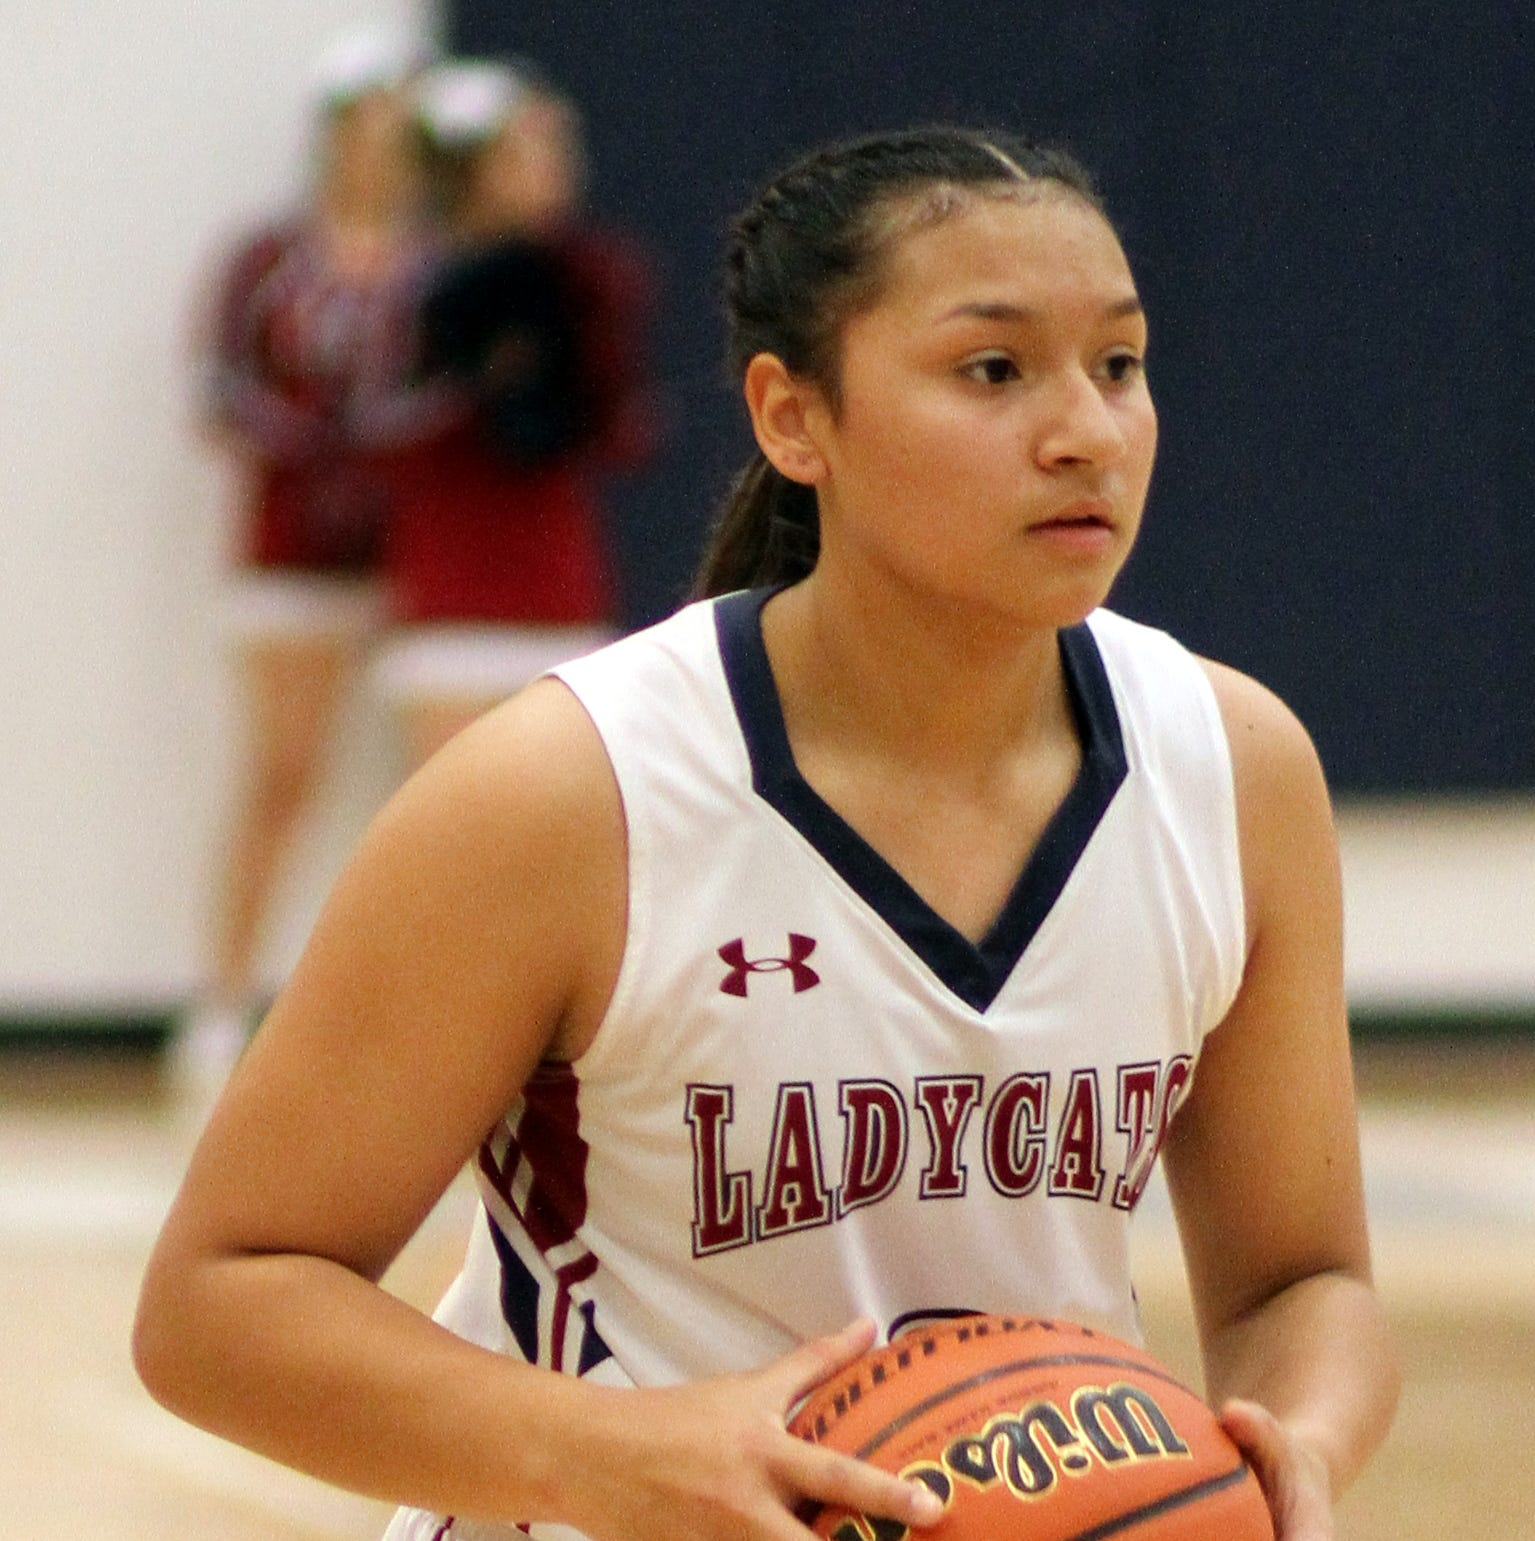 Harmanie Dominguez has taken her free-throw talent to the next level.